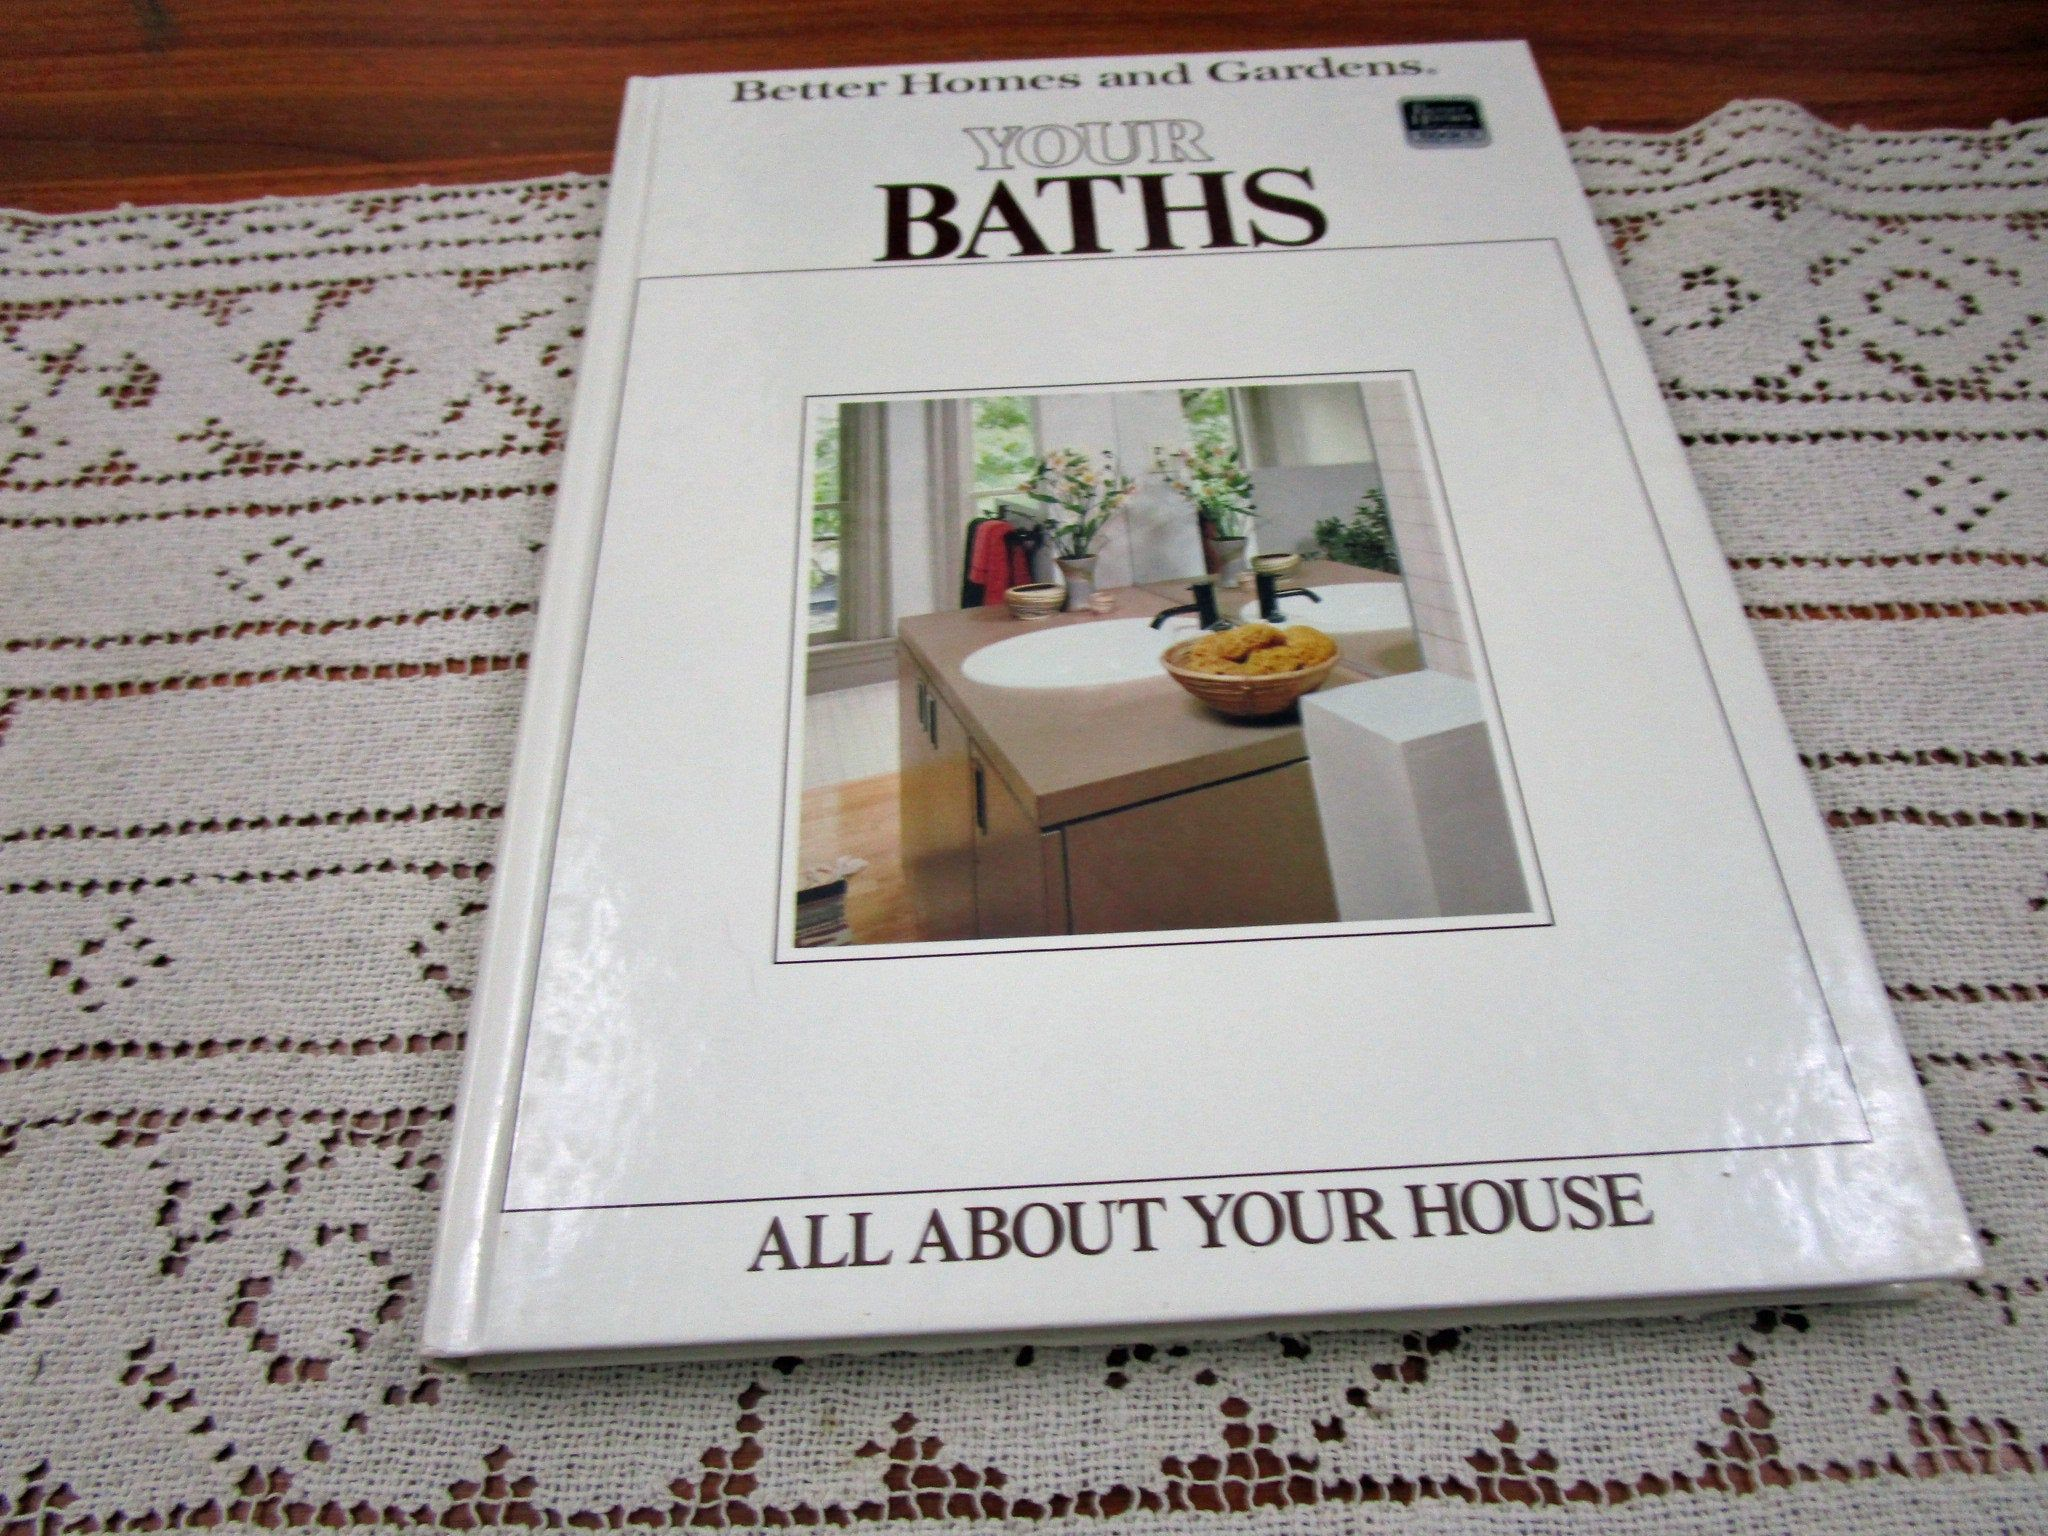 Vintage Your Bath  Better Homes and Gardens BHG All About Your House Series Hardcover Book Projects How To by KattsCurioCabinet on Etsy